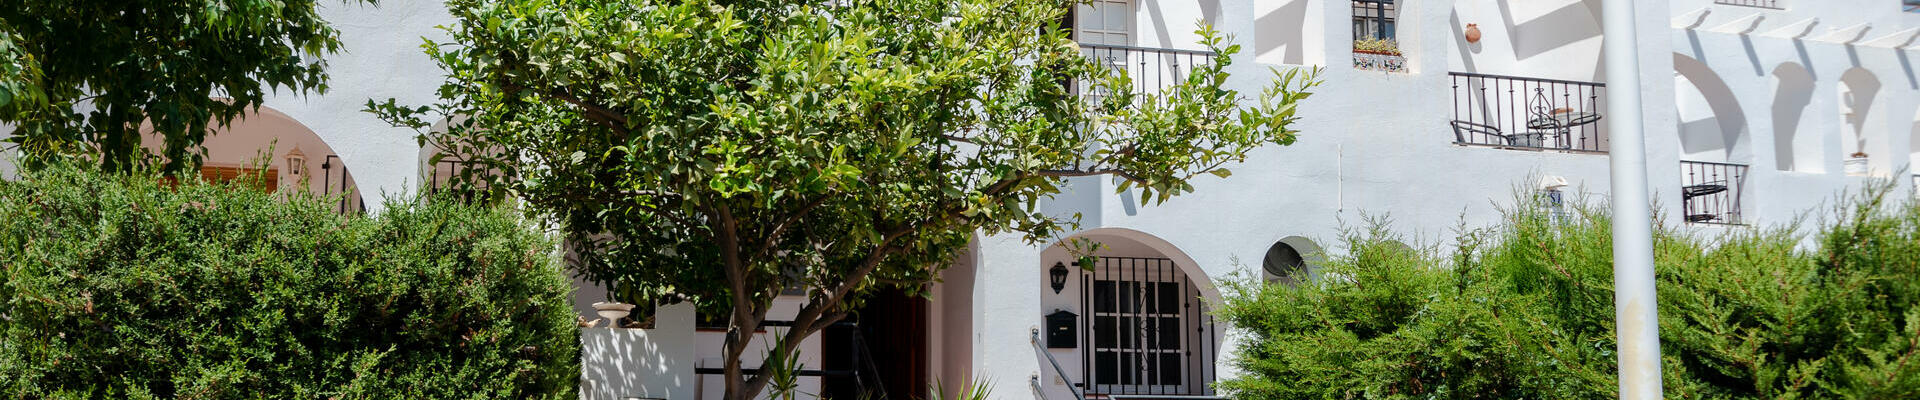 LV798: 2 Bedroom Townhouse for Sale